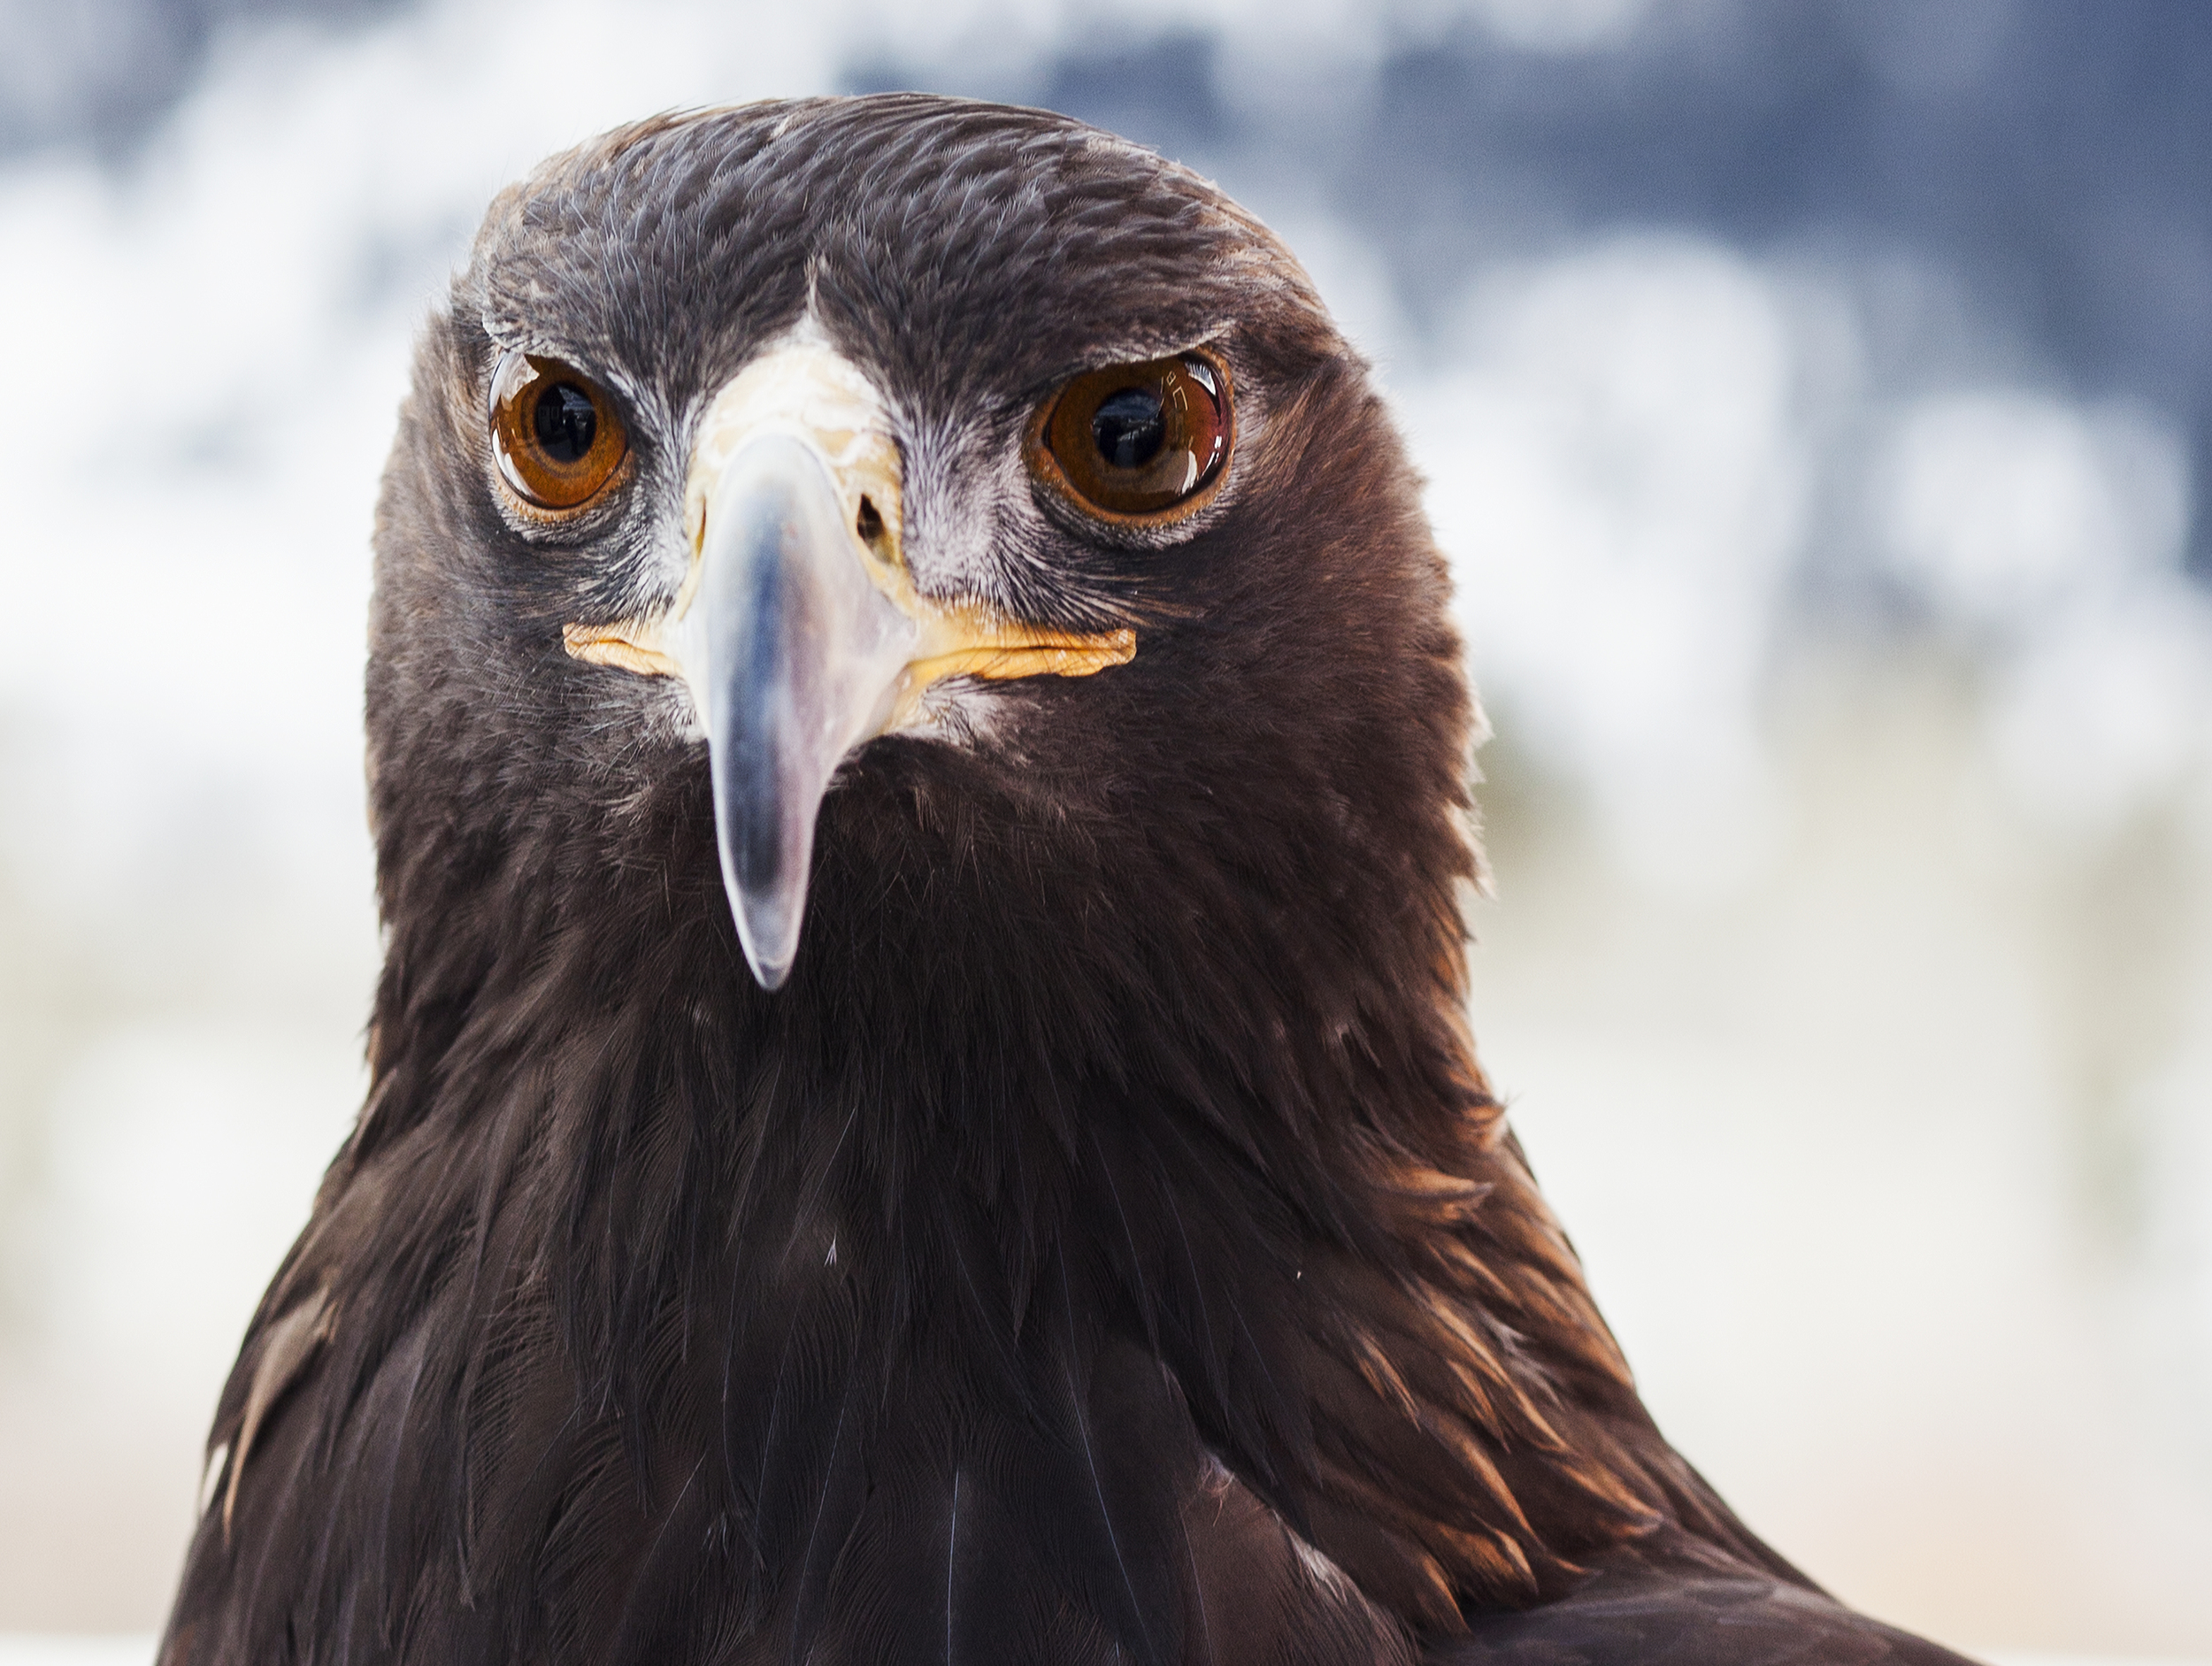 Gus theGolden Eagle, ambassador for his species at the Teton Raptor Center in Wilson, Wyoming.